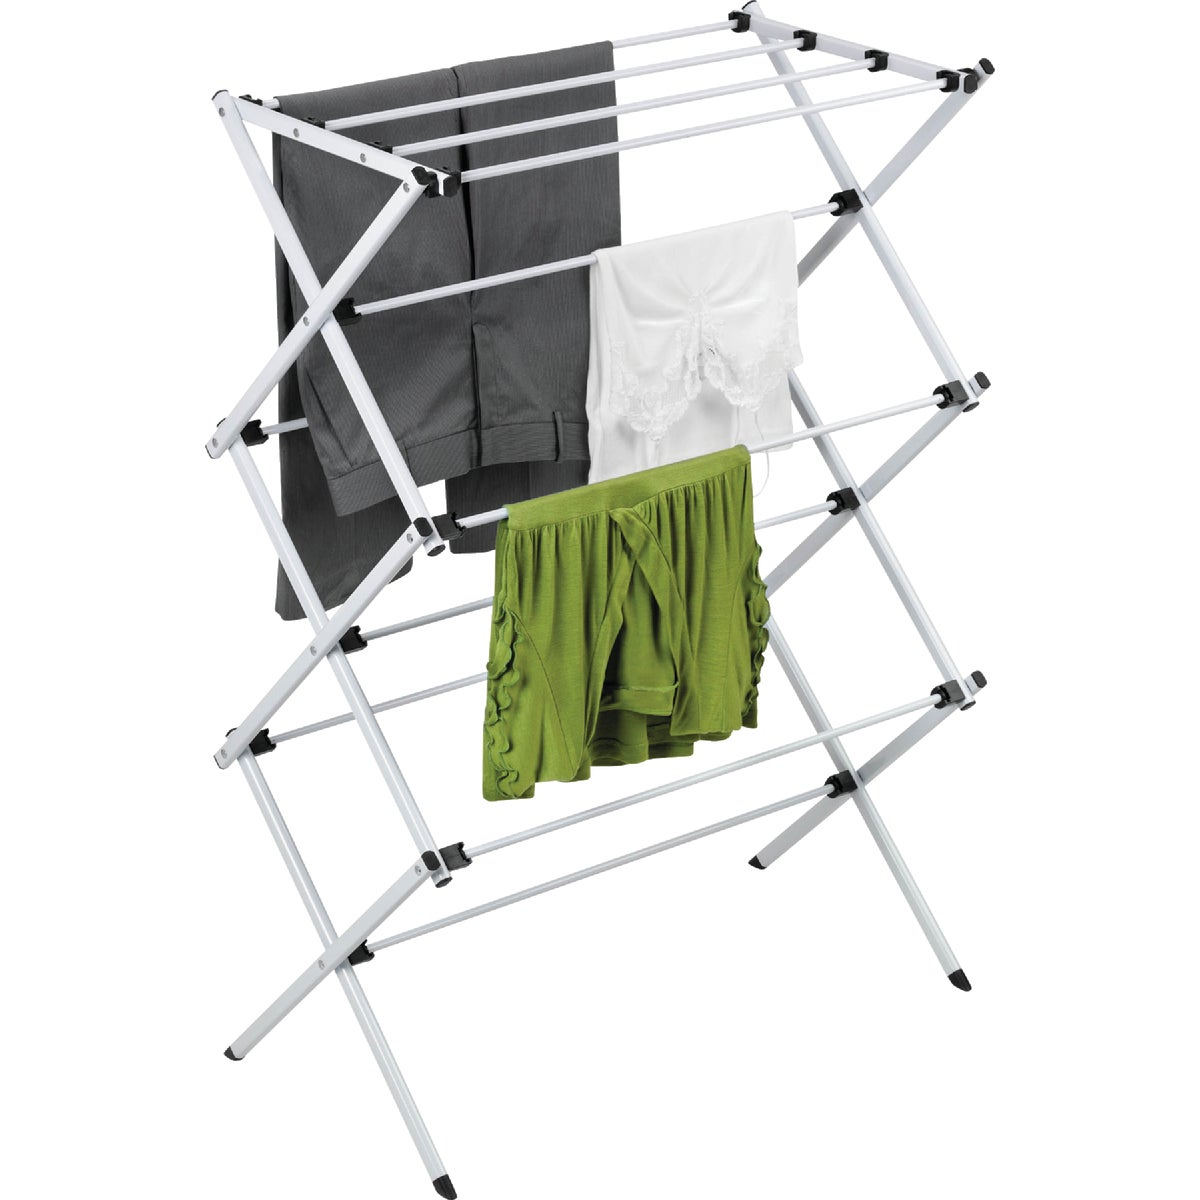 DLX METAL DRYING RACK - DRY-01306 by Honey Can Do